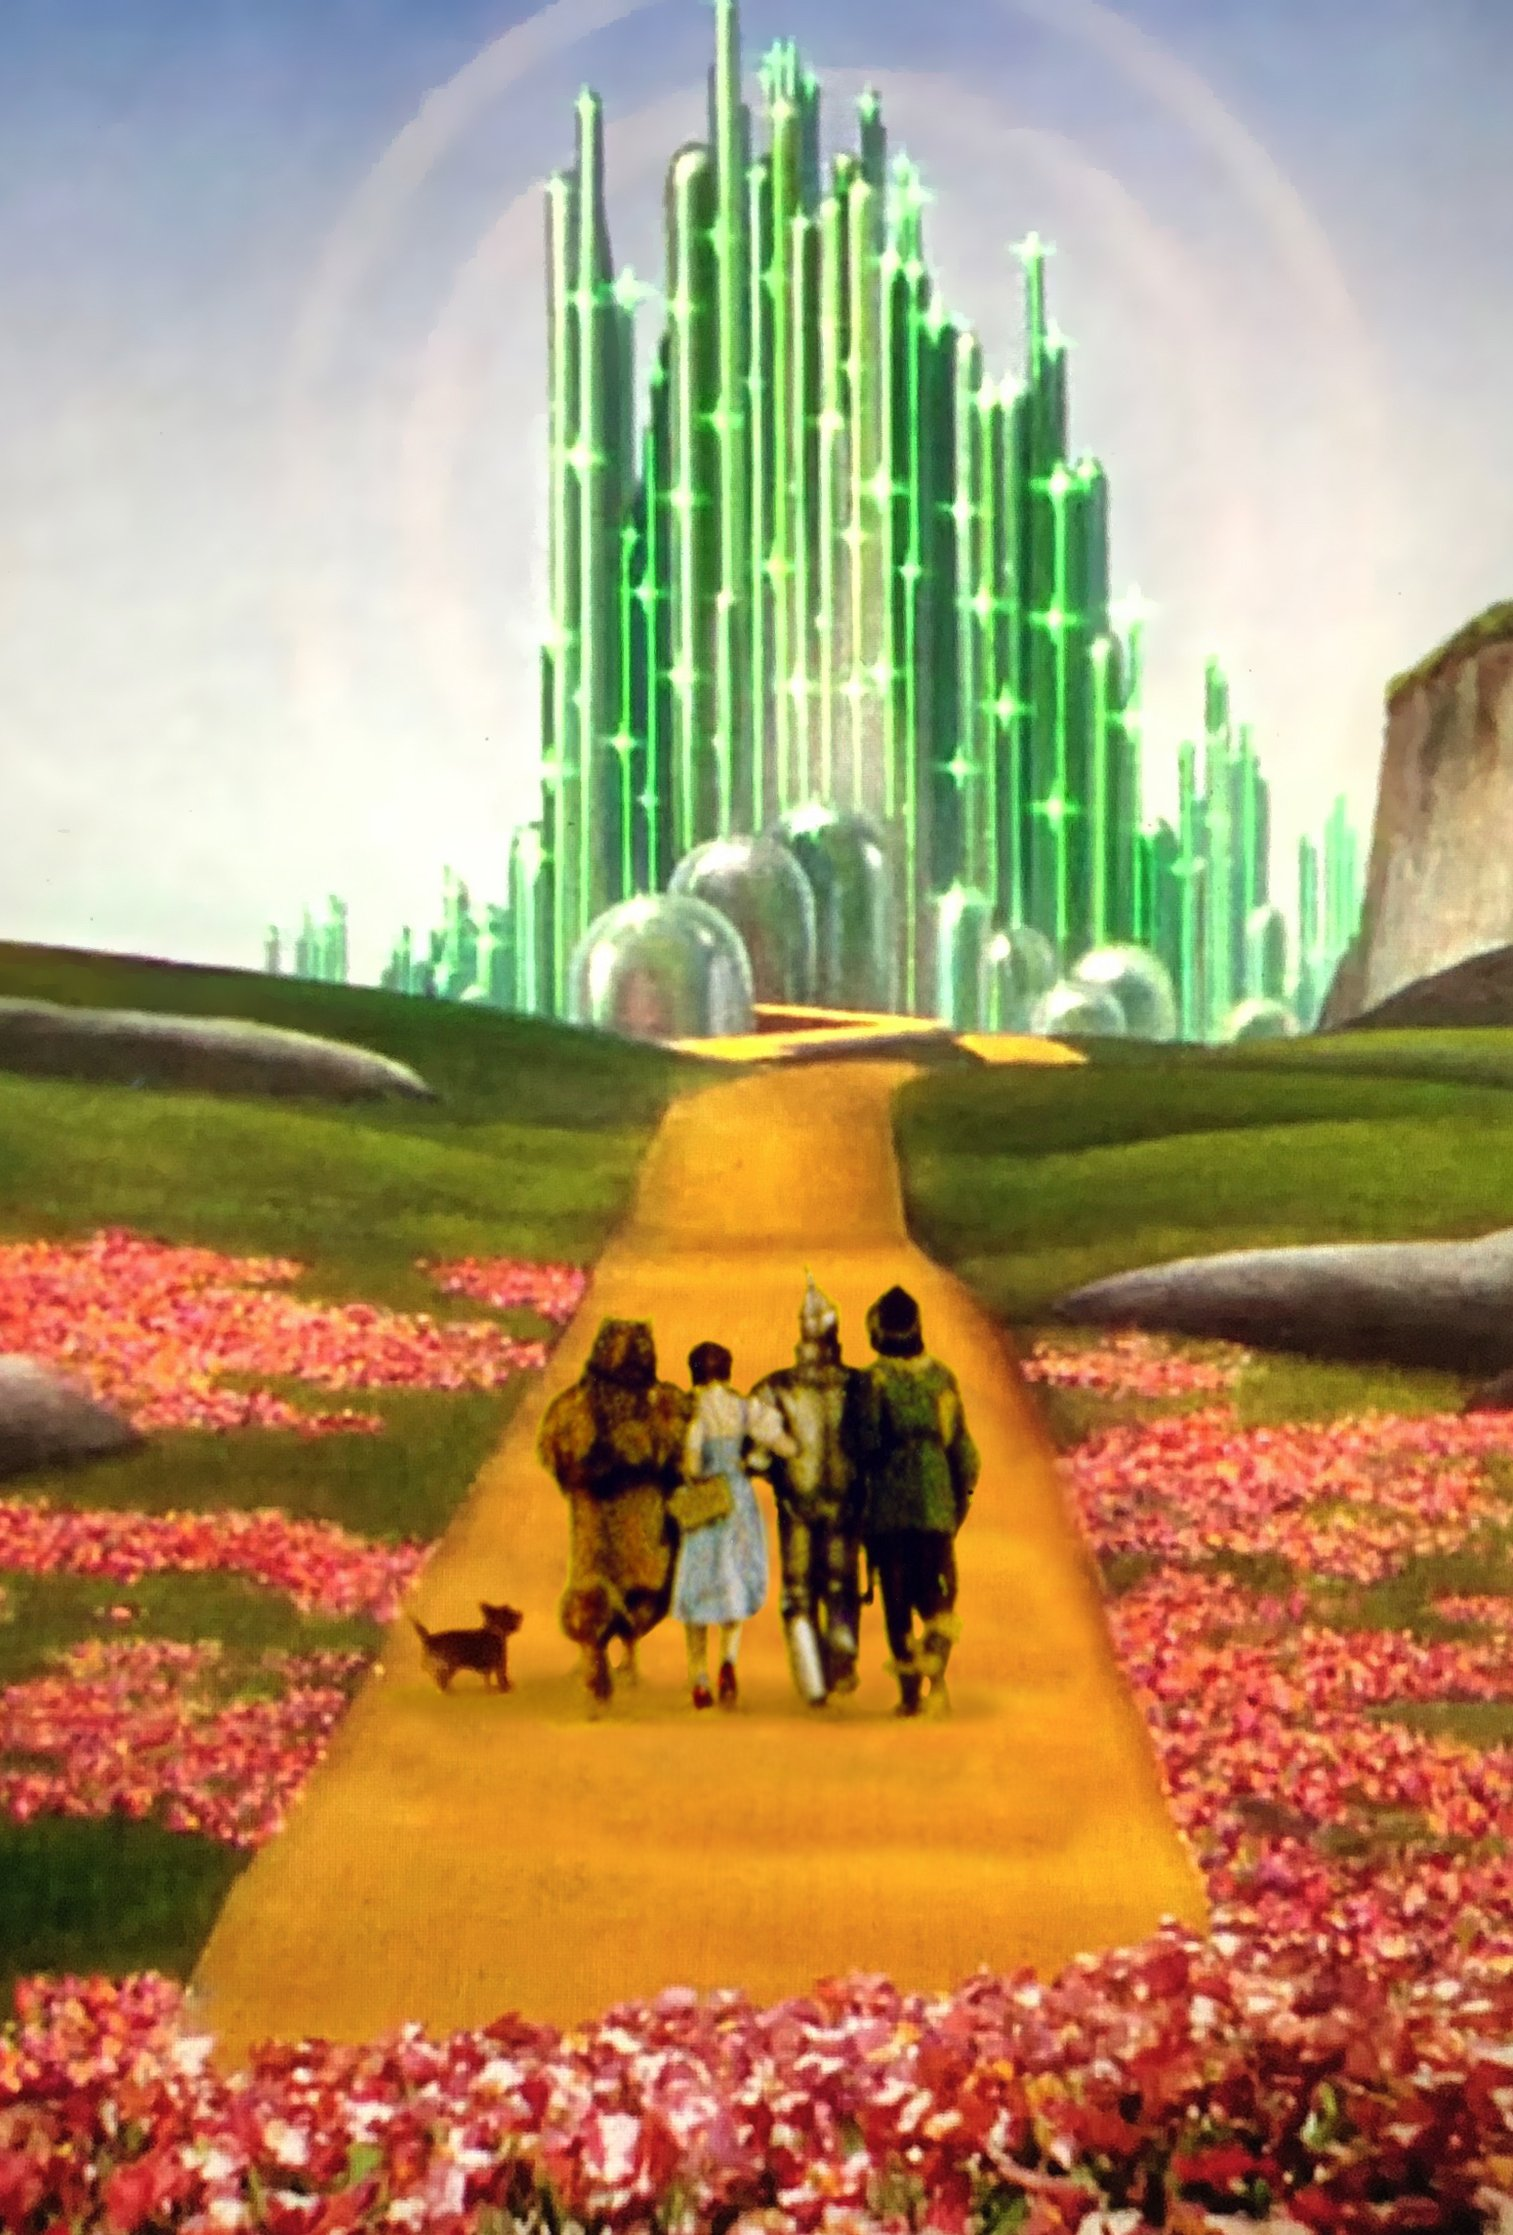 Wiz of Oz new 4fnl The Tragic Life And Death Of Judy Garland